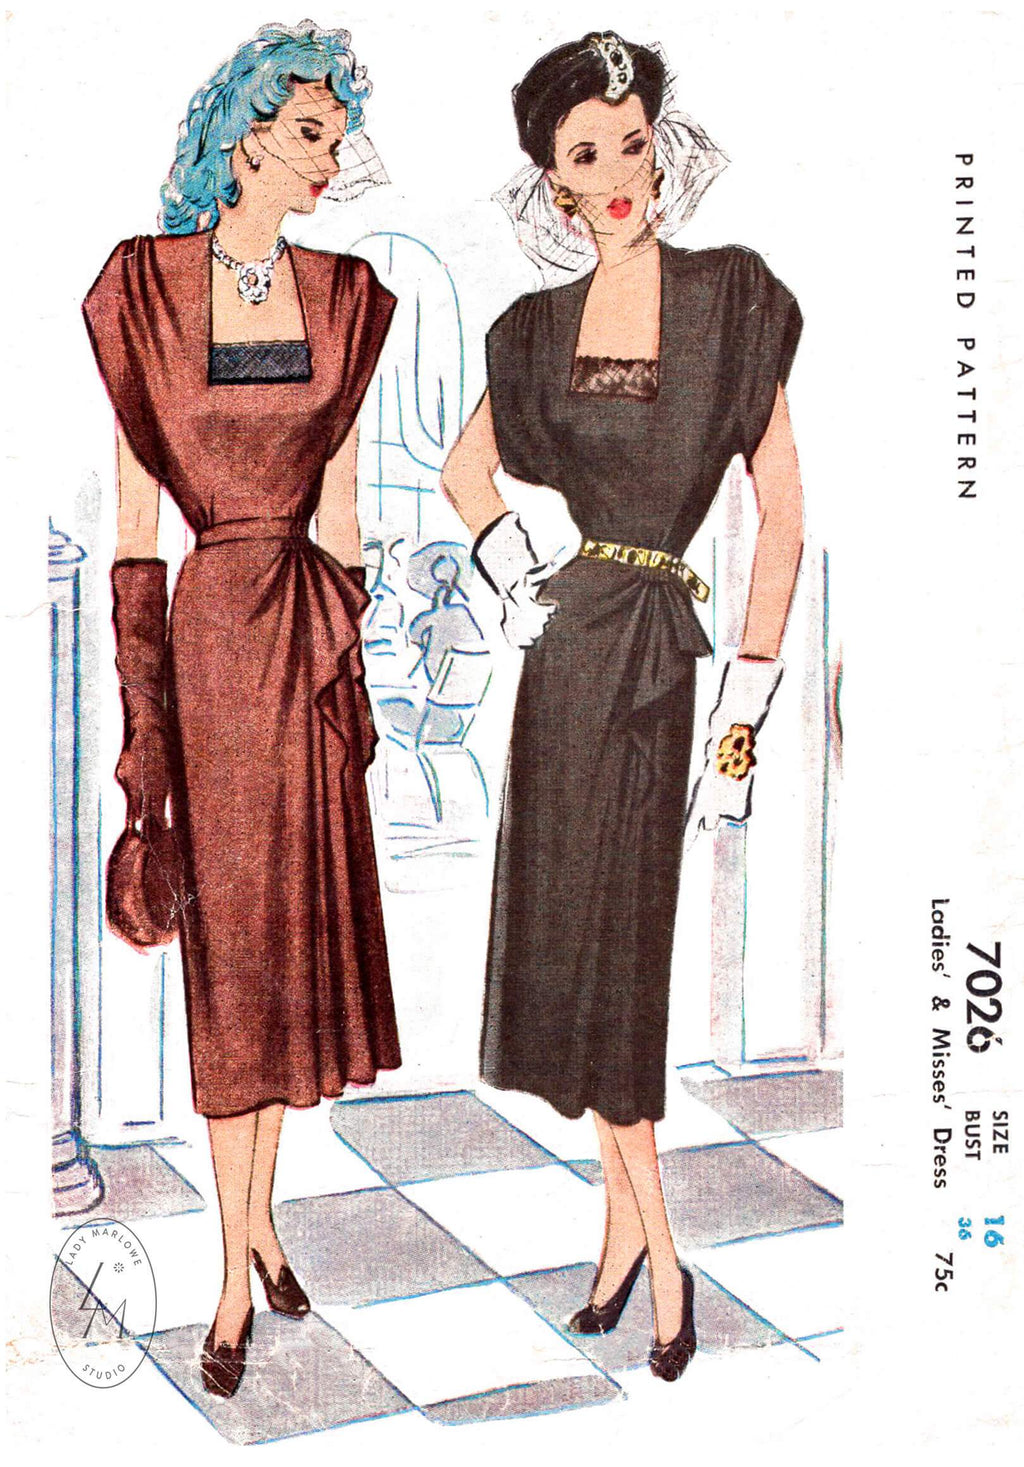 McCall 7026 1940s cocktail dress vintage sewing pattern reproduction